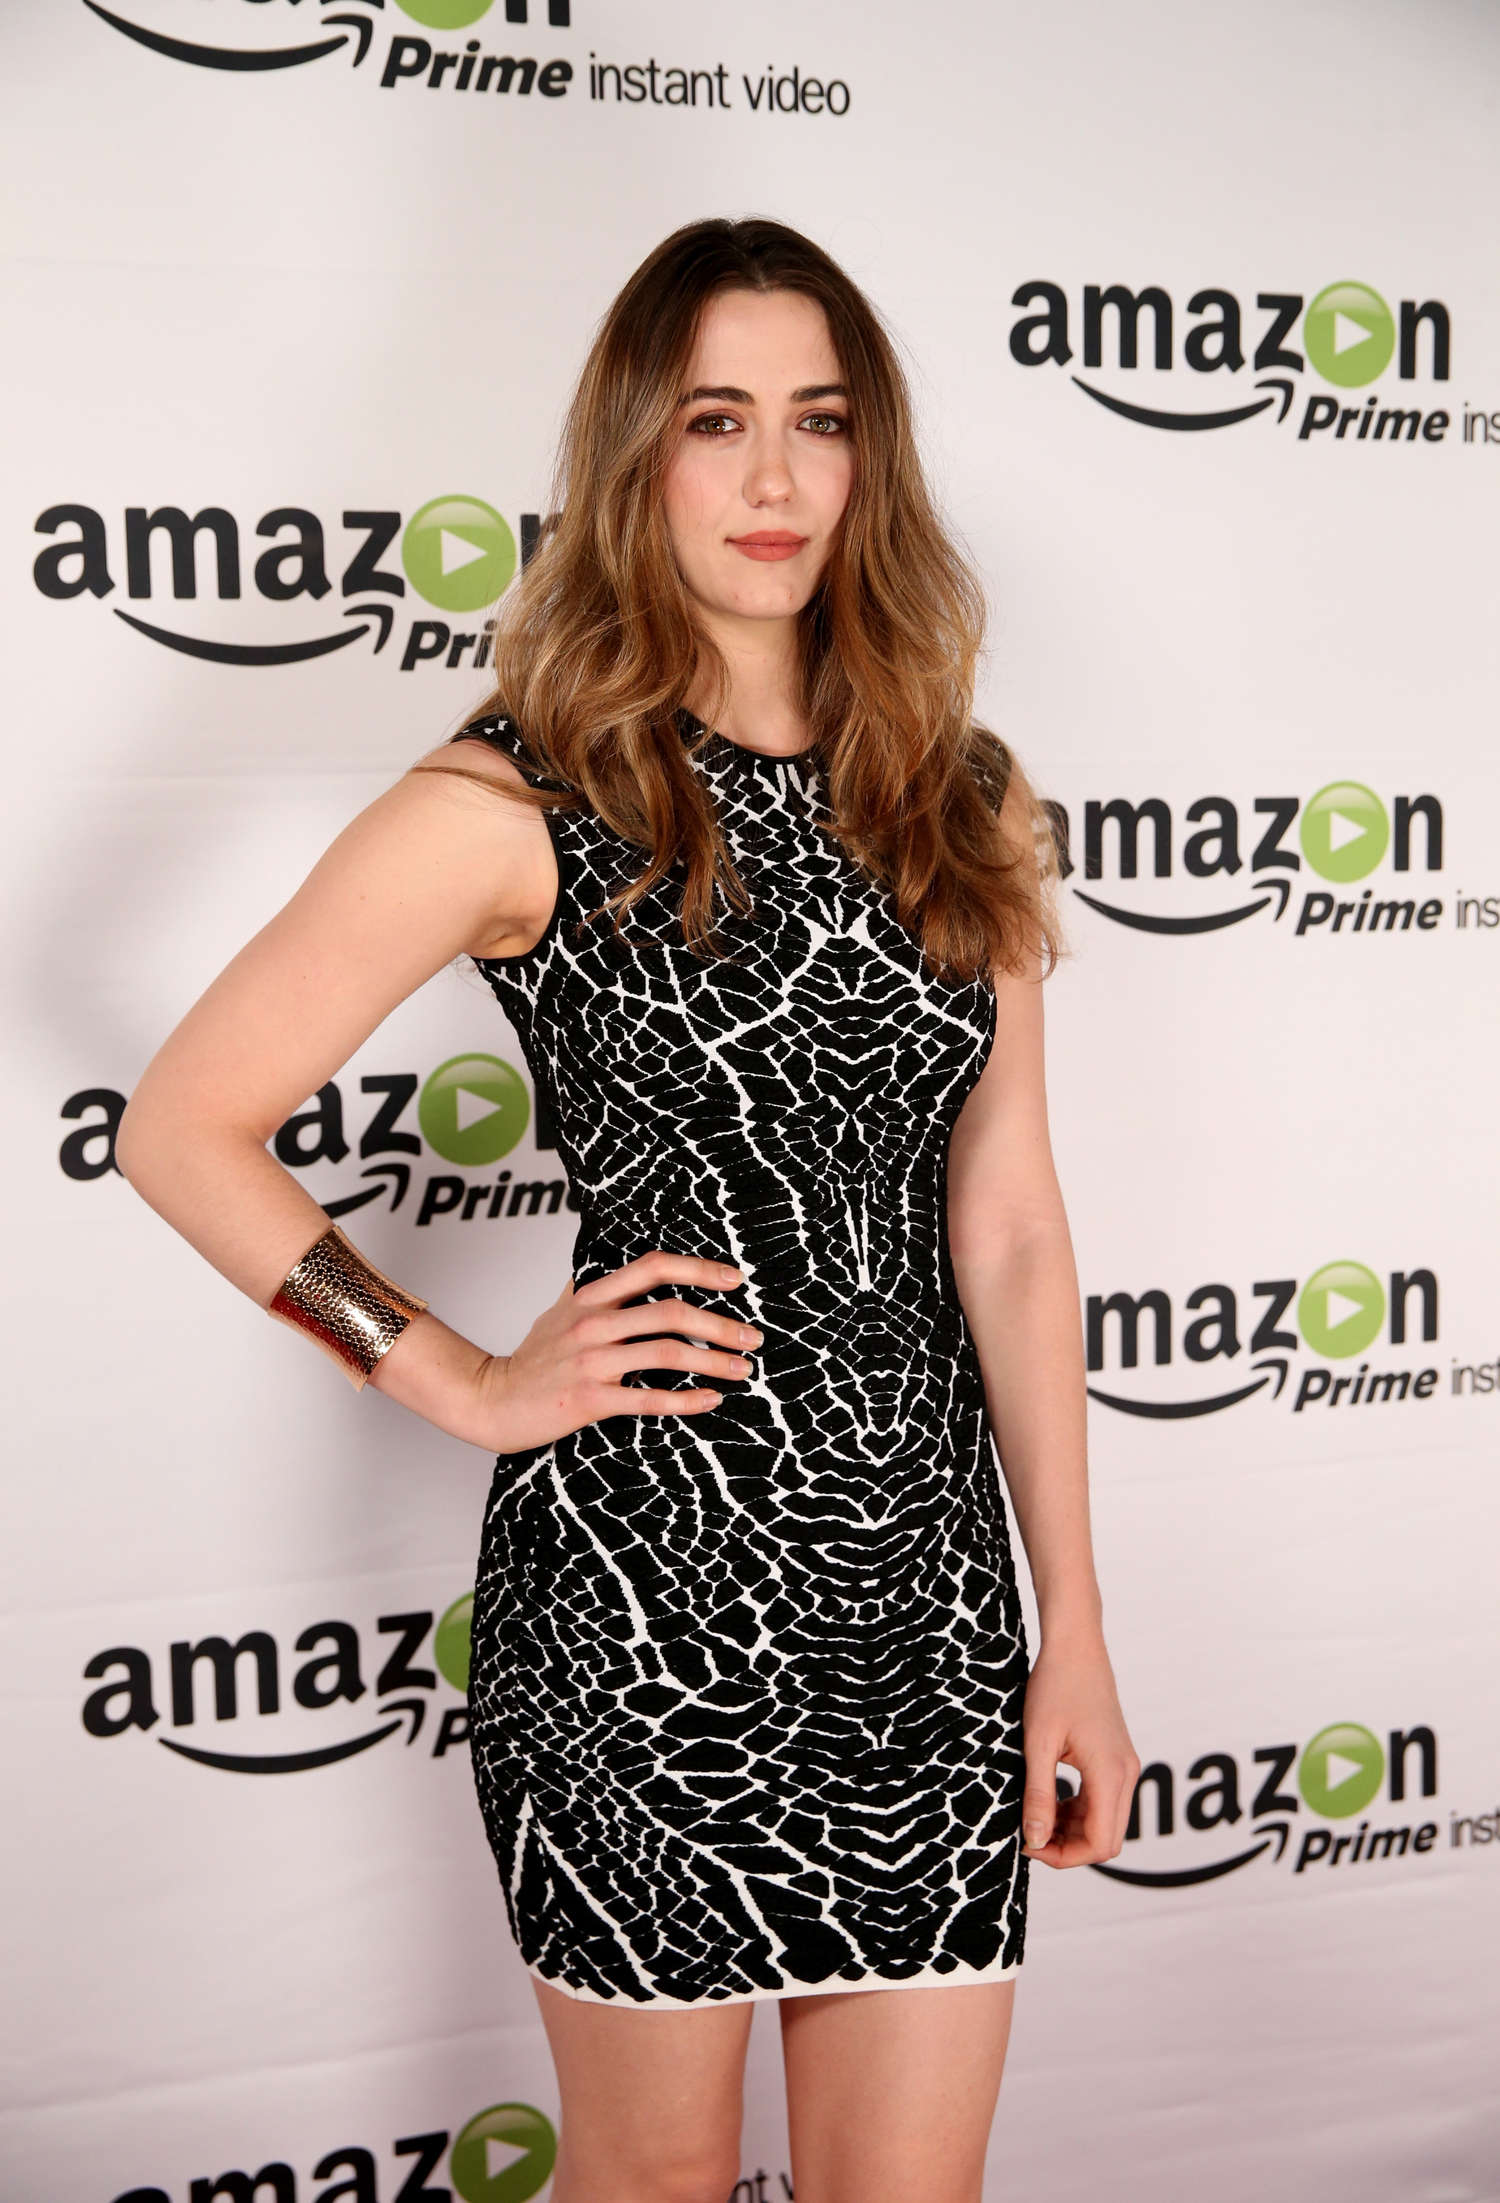 madeline zima net worthmadeline zima 2015, madeline zima weight, madeline zima listal, madeline zima 2017, madeline zima facebook, madeline zima foto, madeline zima фото, madeline zima инстаграм, madeline zima wikipedia, madeline zima, madeline zima instagram, madeline zima wiki, madeline zima vampire diaries, madeline zima the nanny, madeline zima imdb, madeline zima net worth, madeline zima heroes